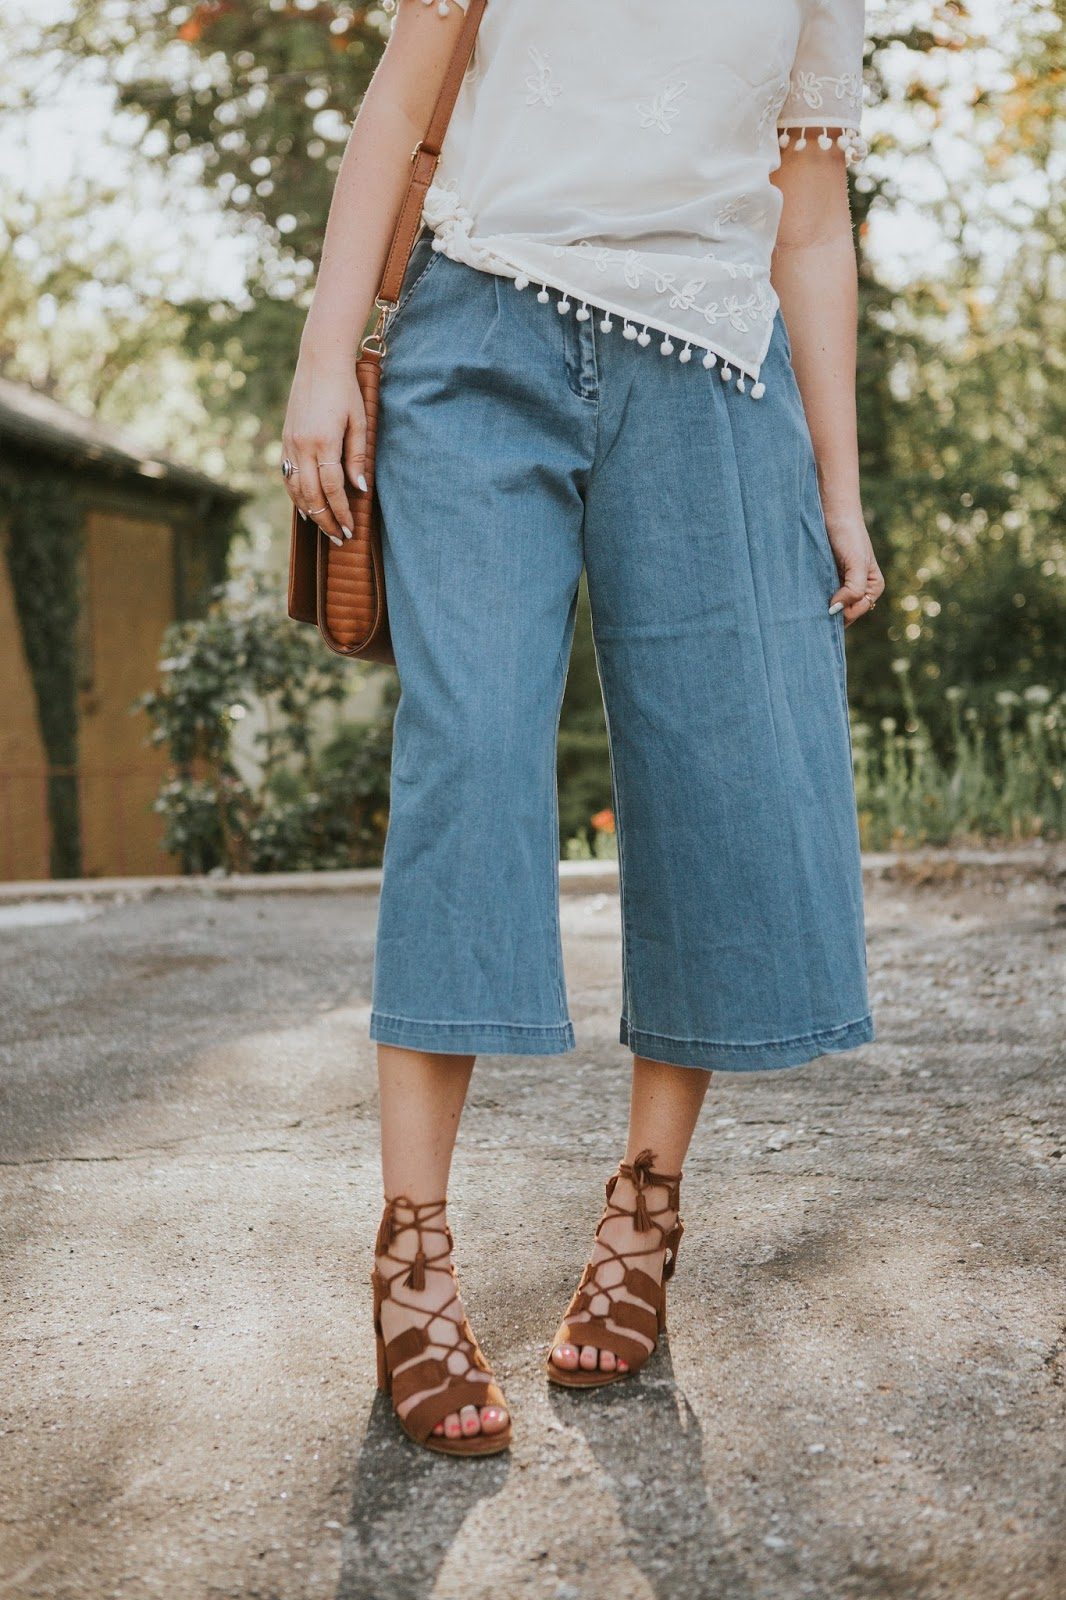 Culotte, Tall Girl Outfit, Utah Fashion Blogger